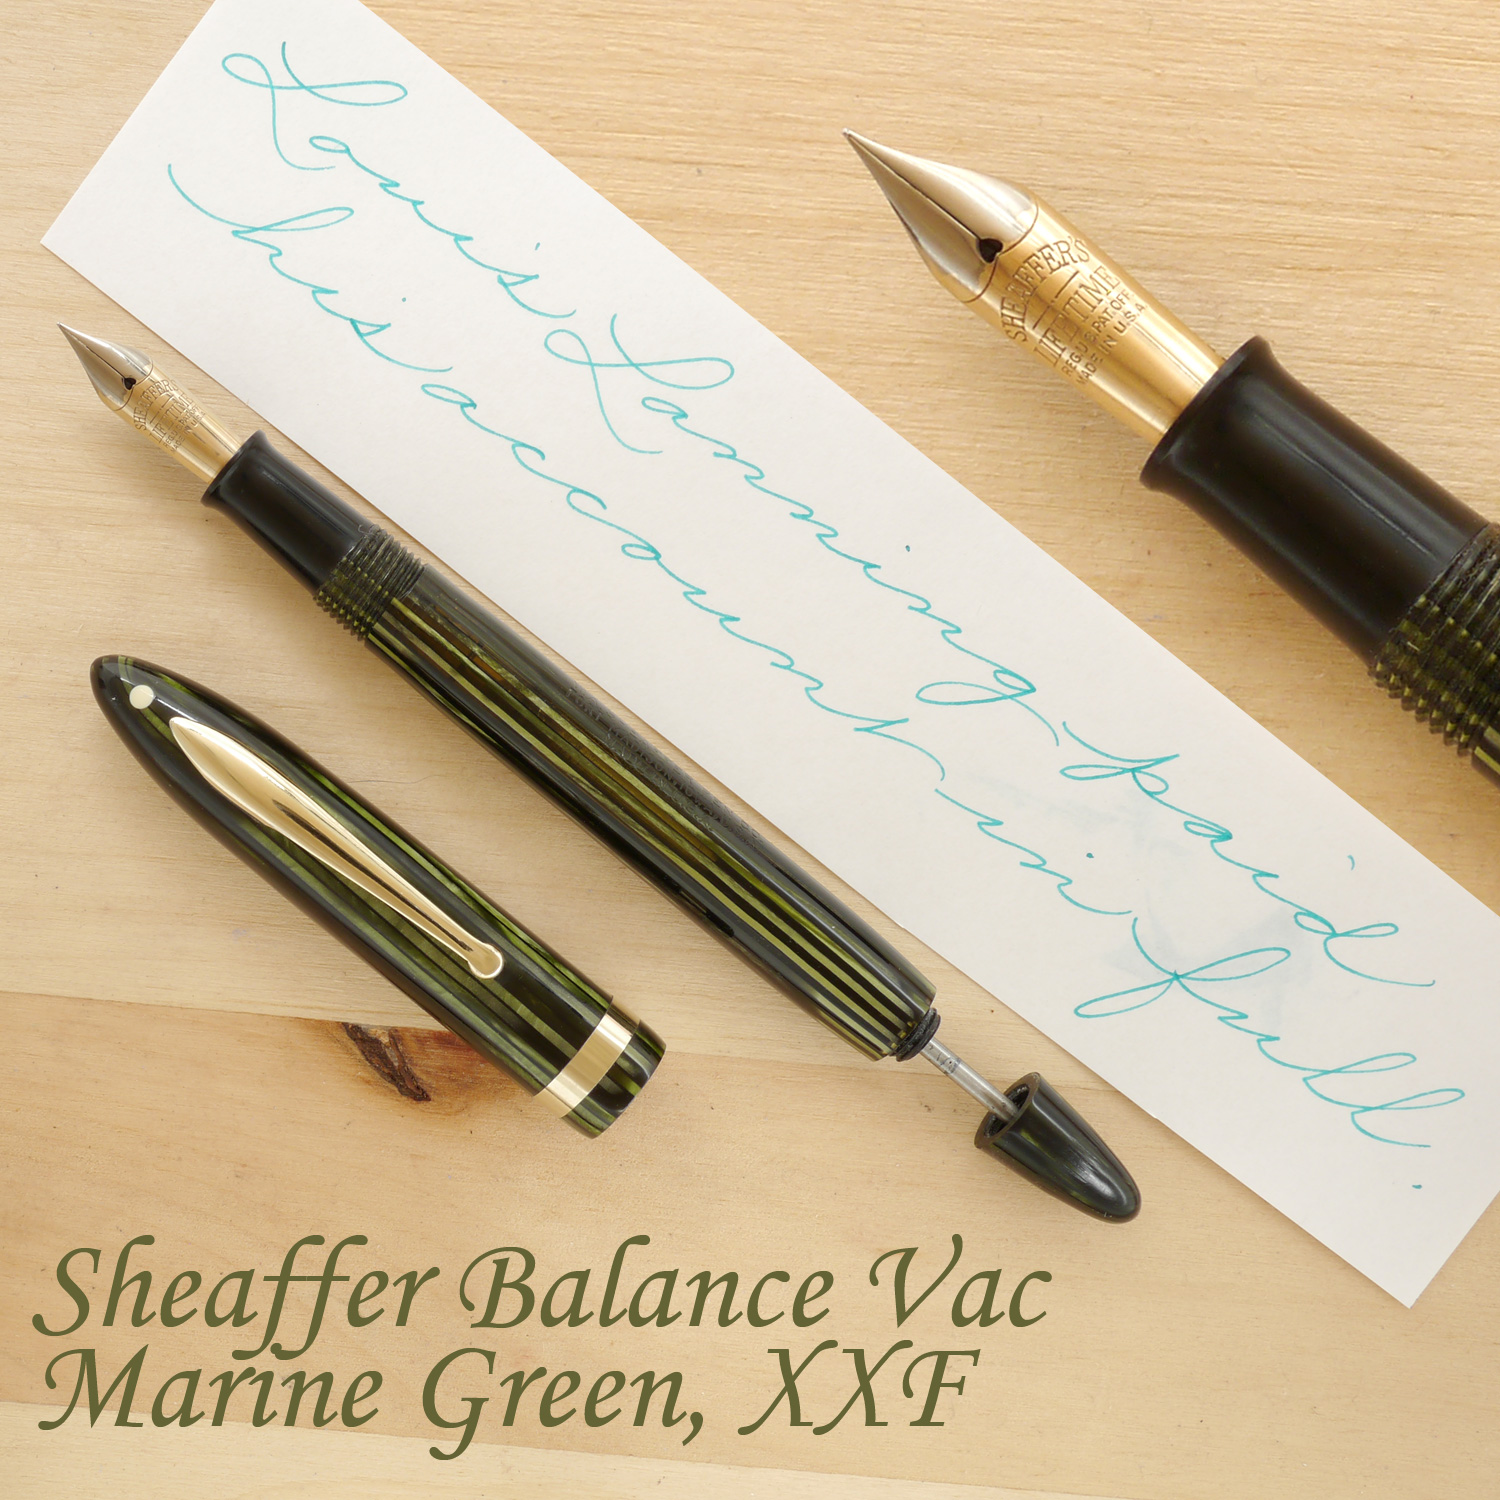 Sheaffer Balance Vac Fountain Pen, Marine Green, XXF, uncapped, with the plunger partially extended